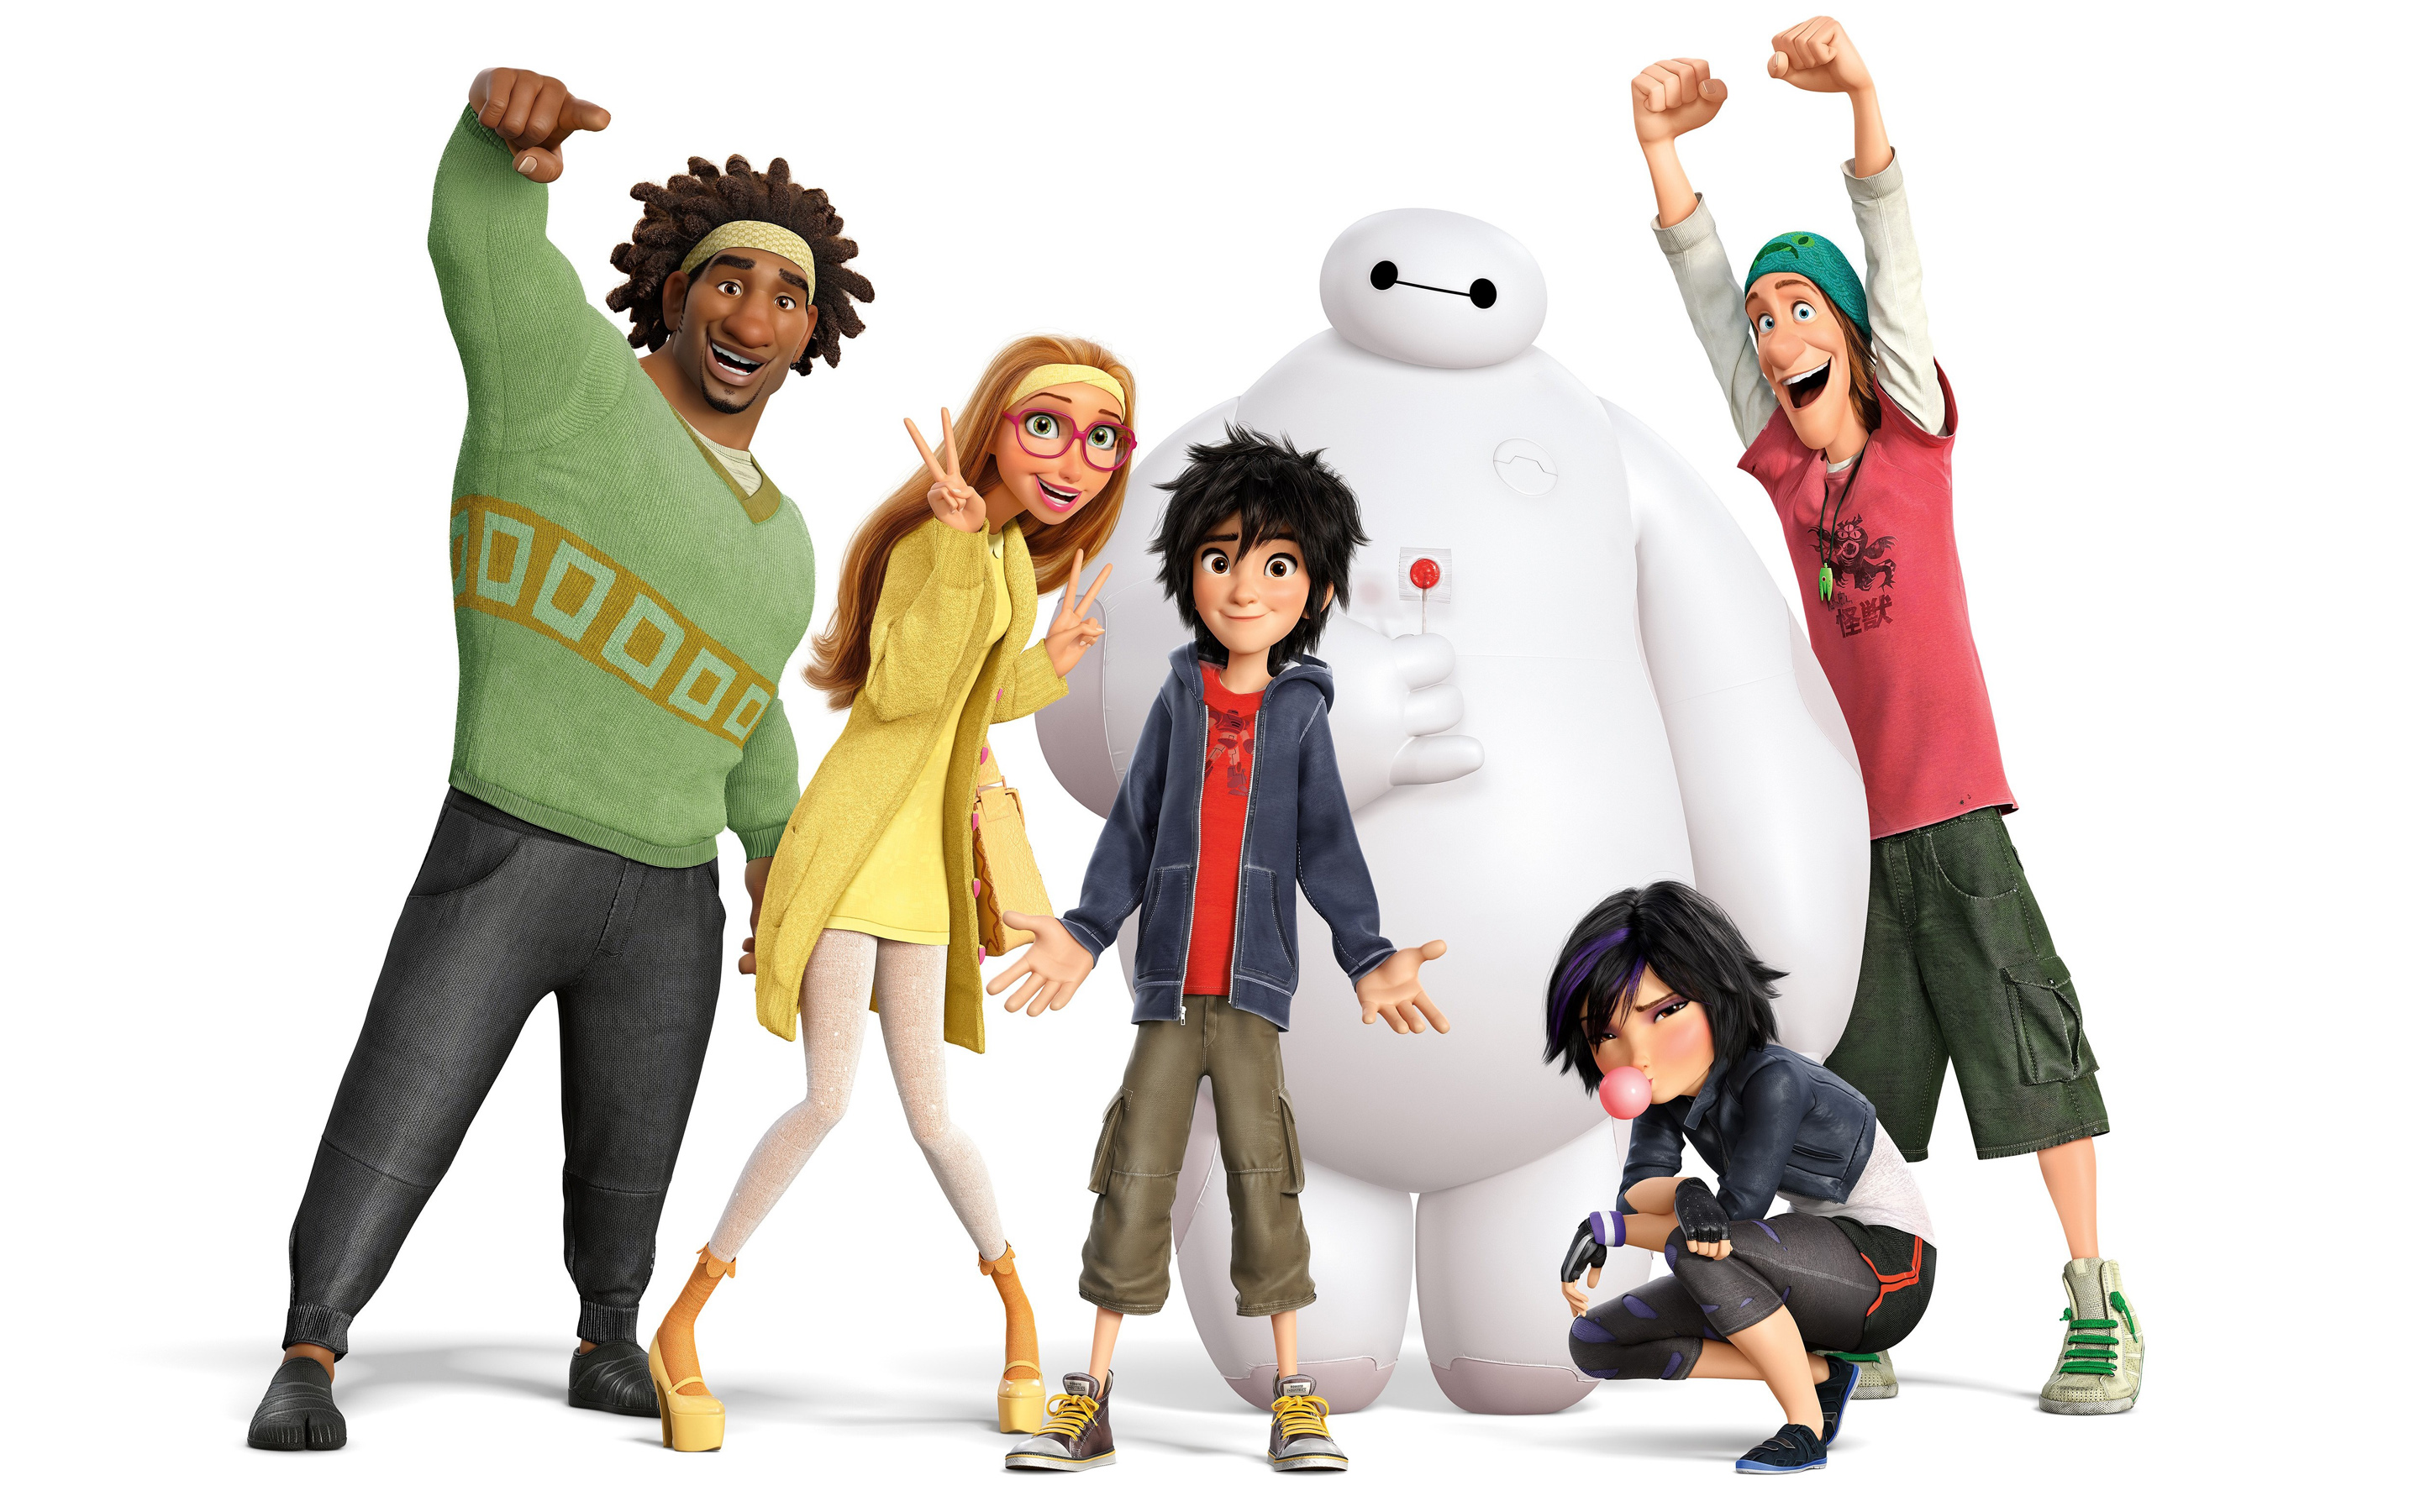 Big Hero 6 Movie 3343.19 Kb